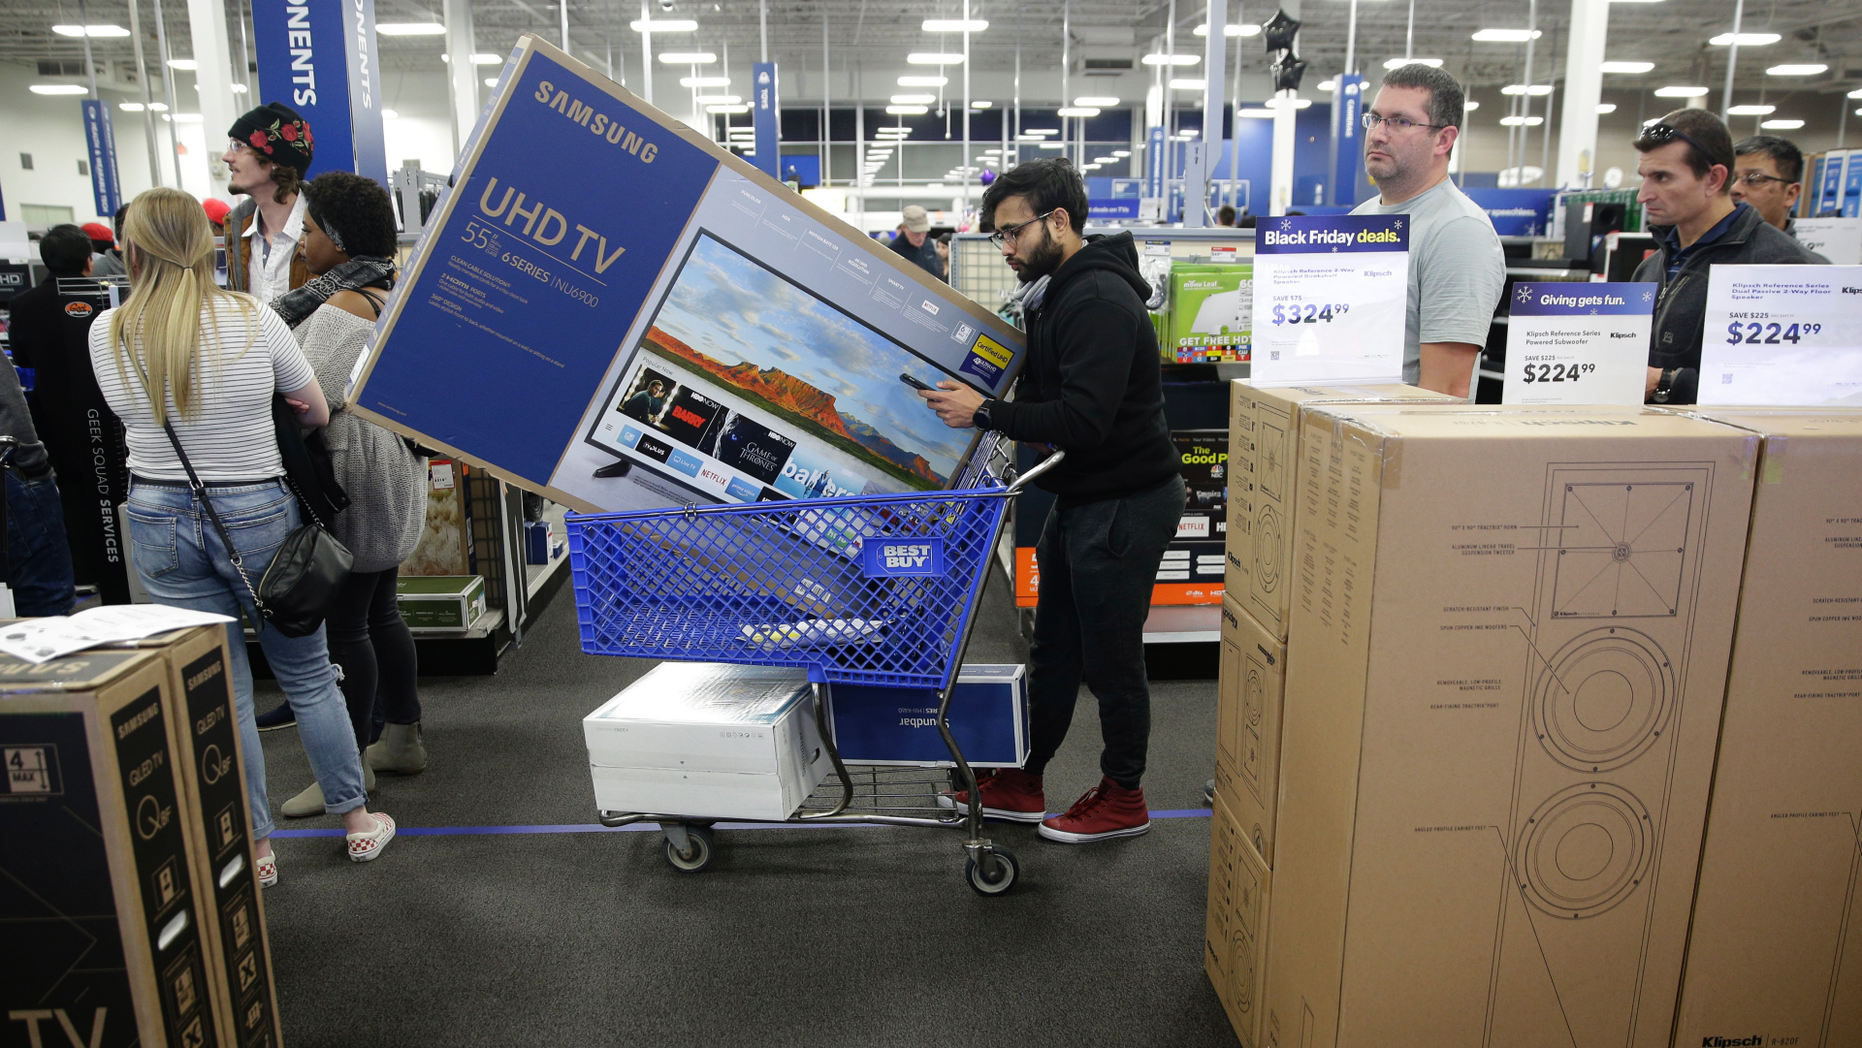 FILE- In these November 22, 2018, photo people are waiting to buy television while buying at an early Black Friday sale at a Best Buy store on Thanksgiving Day in Overland Park, Kan. Best Buy Co., Inc reports financial results Wednesday, February 27, 2019. (AP Photo / Charlie Riedel, File)